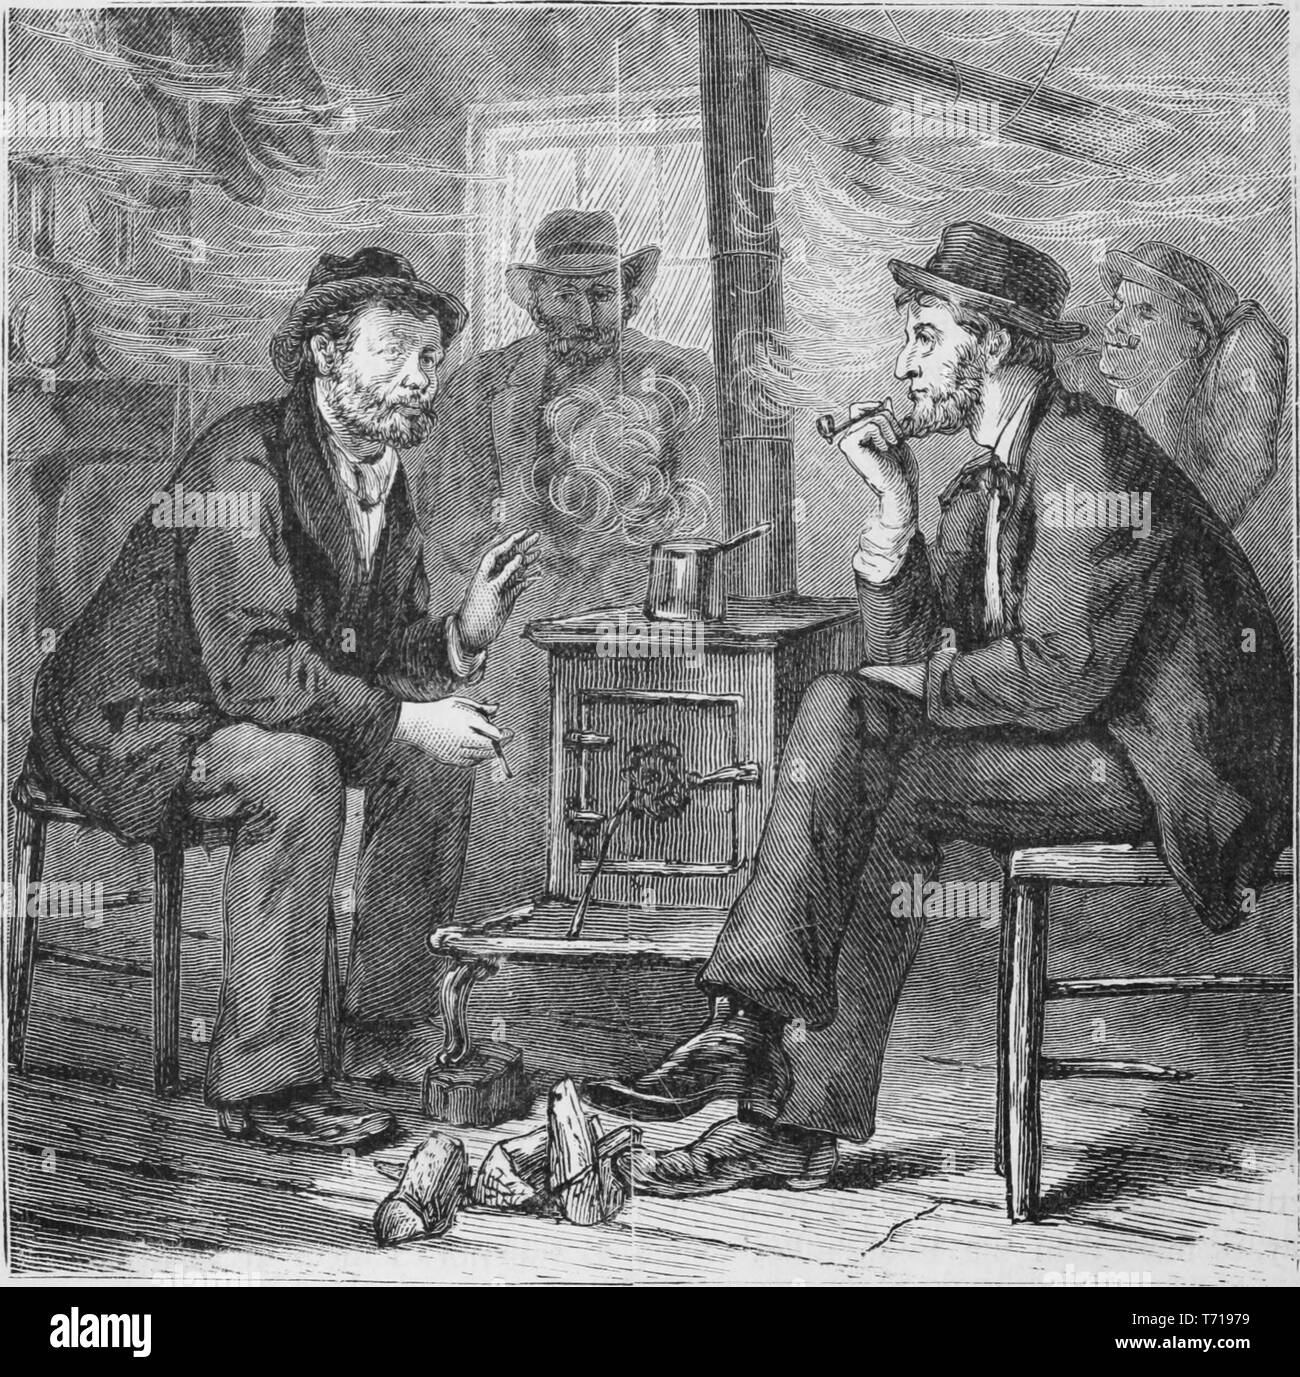 Engraving of four sailors sitting by the wood stove in a smoky room, from the book 'Industrial history of the United States, from the earliest settlements to the present time' by Albert Sidney Bolles, 1878. Courtesy Internet Archive. () - Stock Image